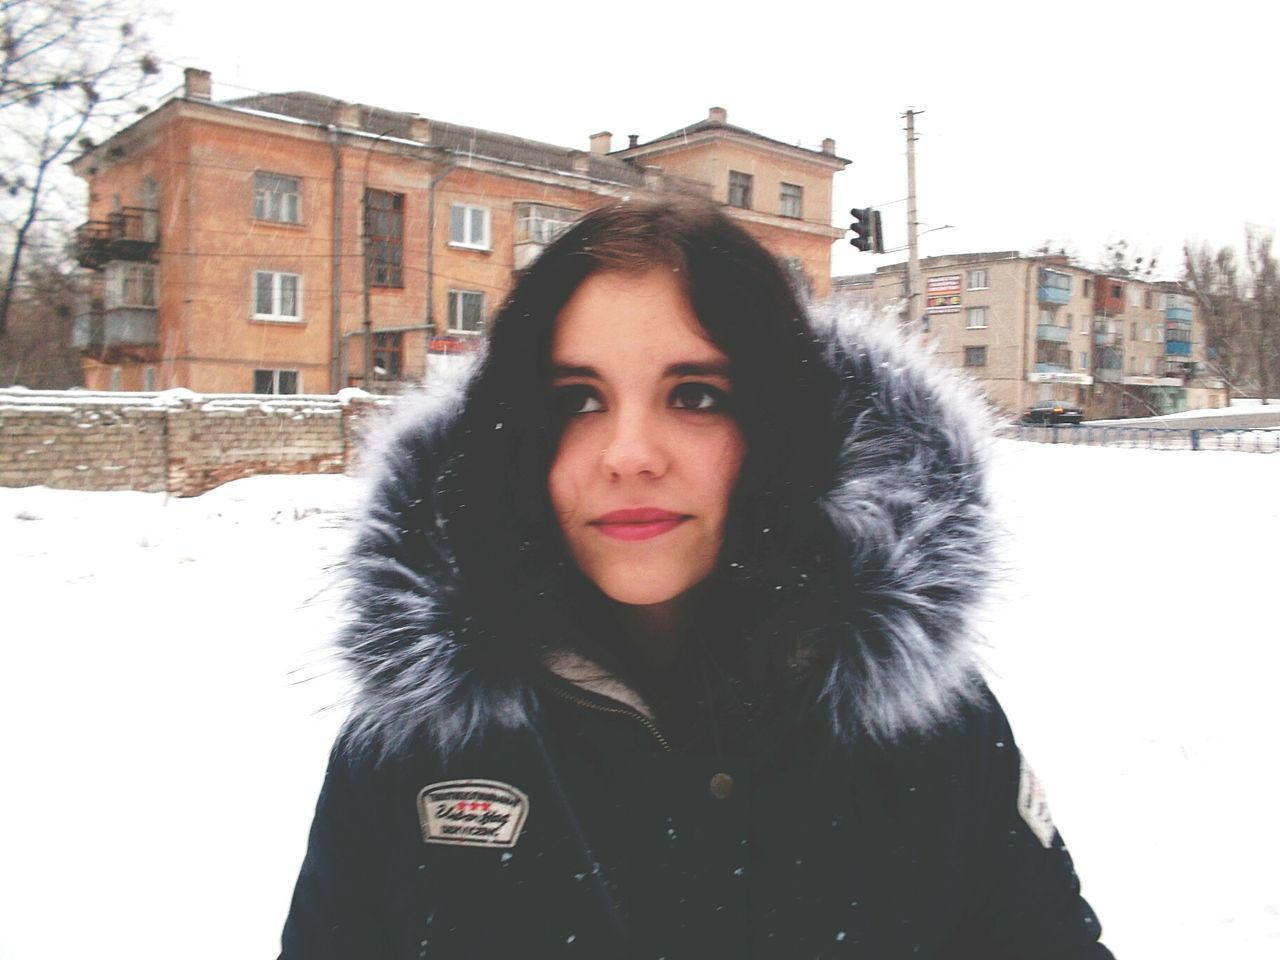 Winter Snow Cold Temperature Looking At Camera Warm Clothing Portrait Weather Snowing Outdoors One Person Young Adult Building Exterior Frozen People Overcoat Adults Only Young Women City One Woman Only Day